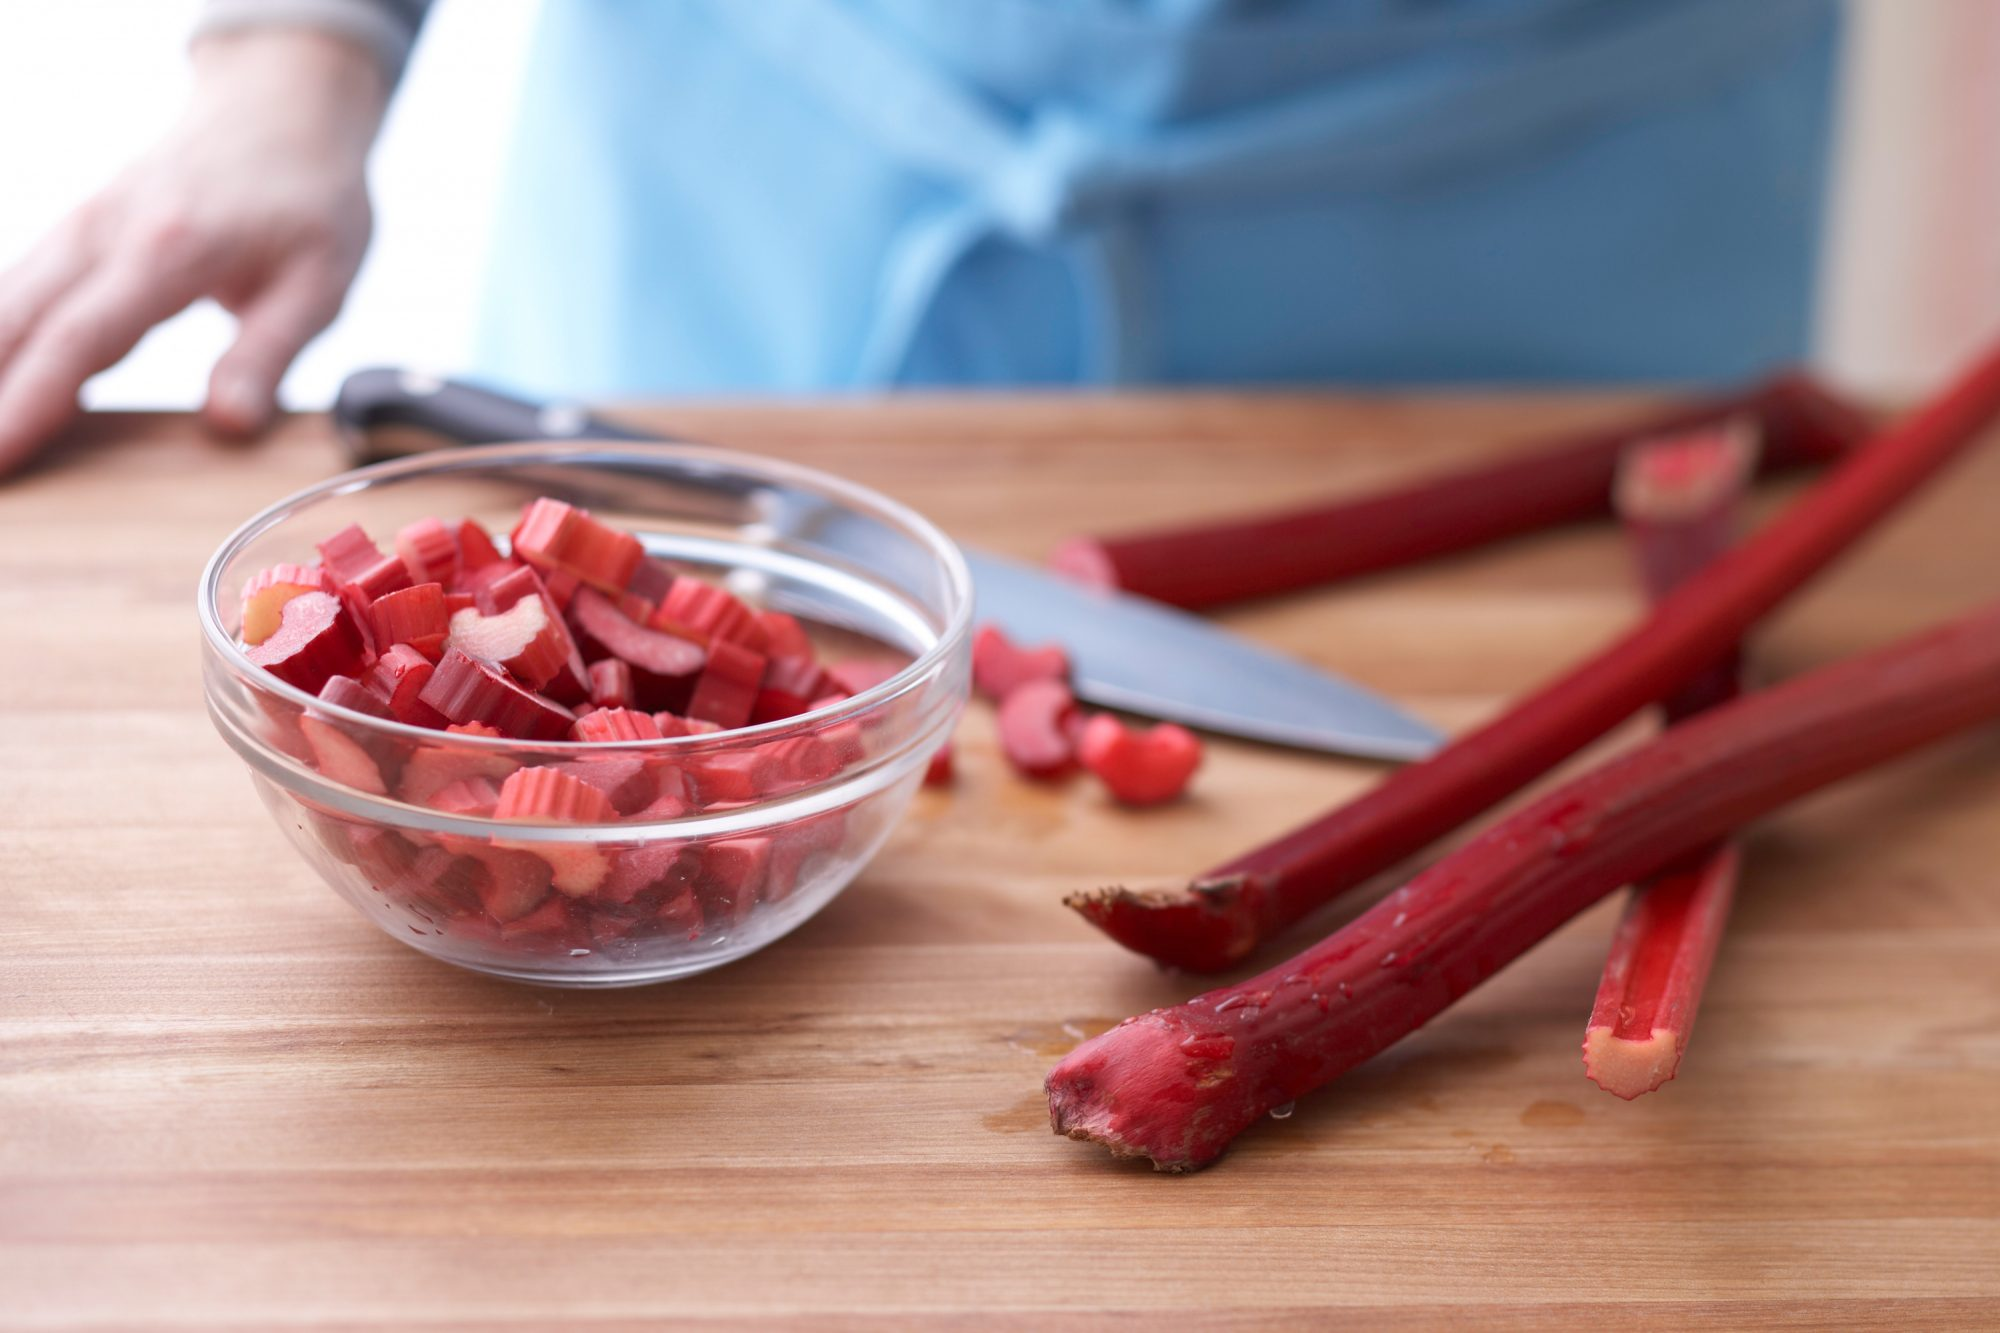 rhubarb stalks with knife on cutting board and cut pieces in bowl